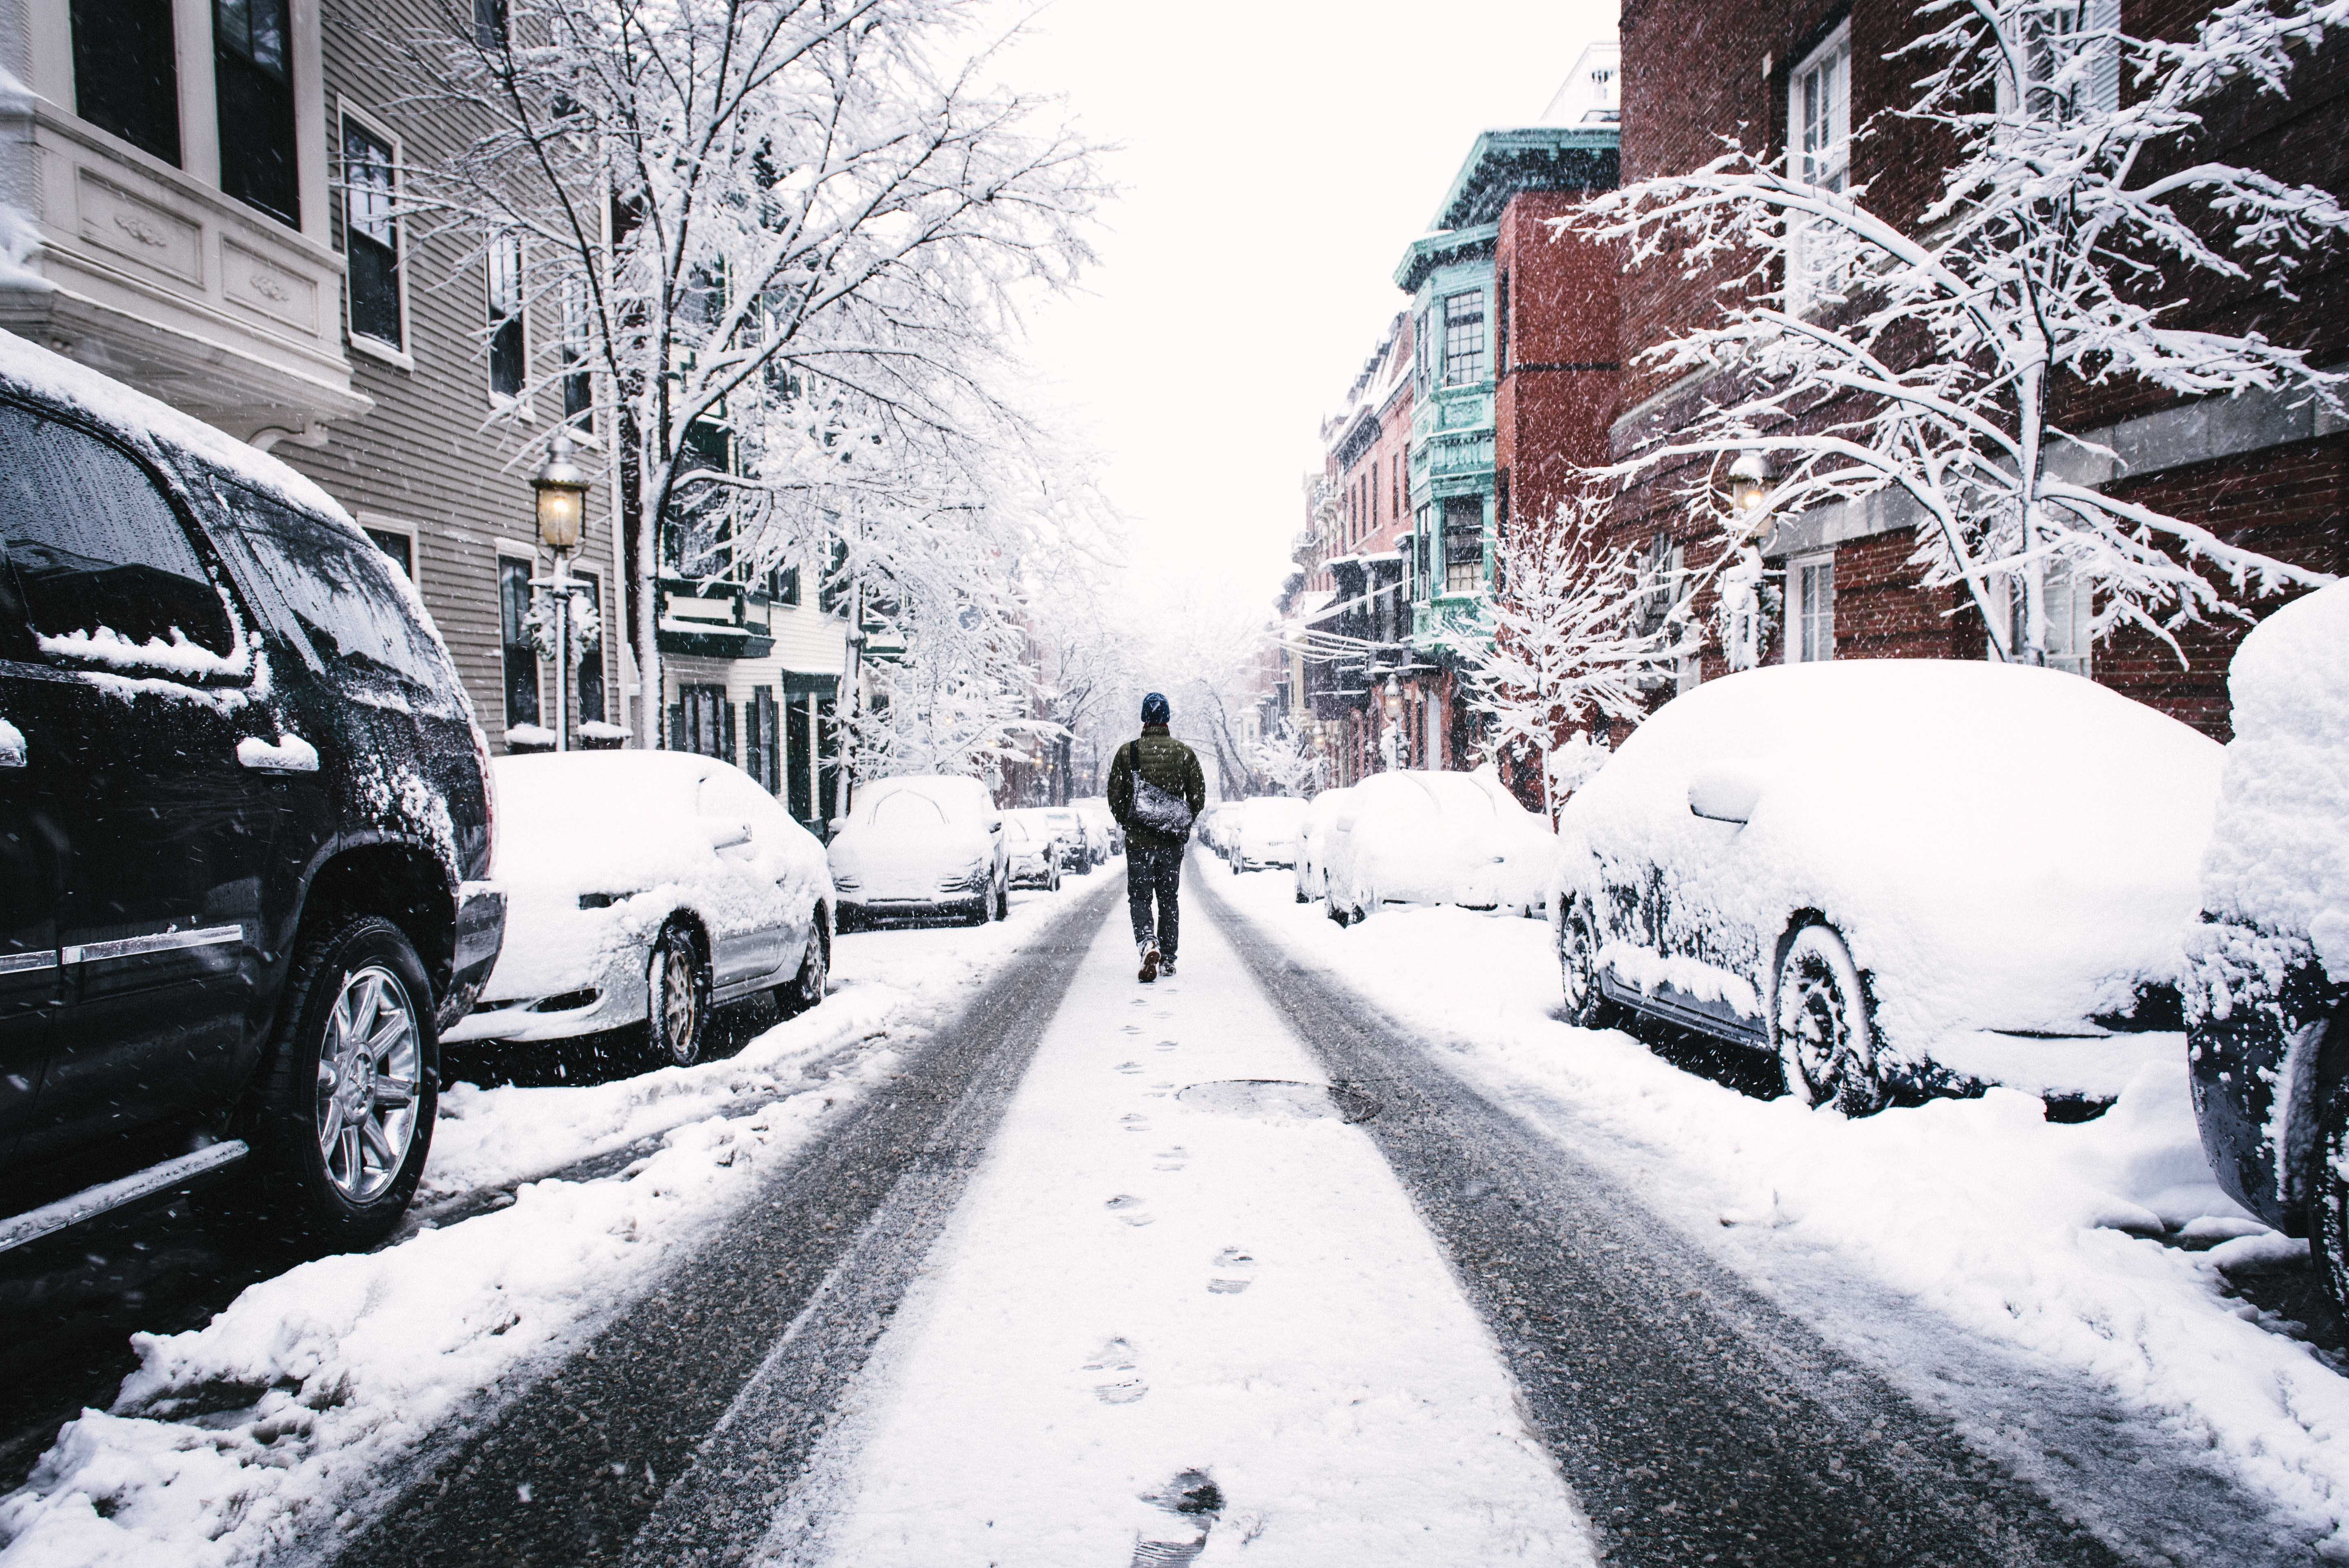 A pedestrian walks between parked cars on road that is covered in snow